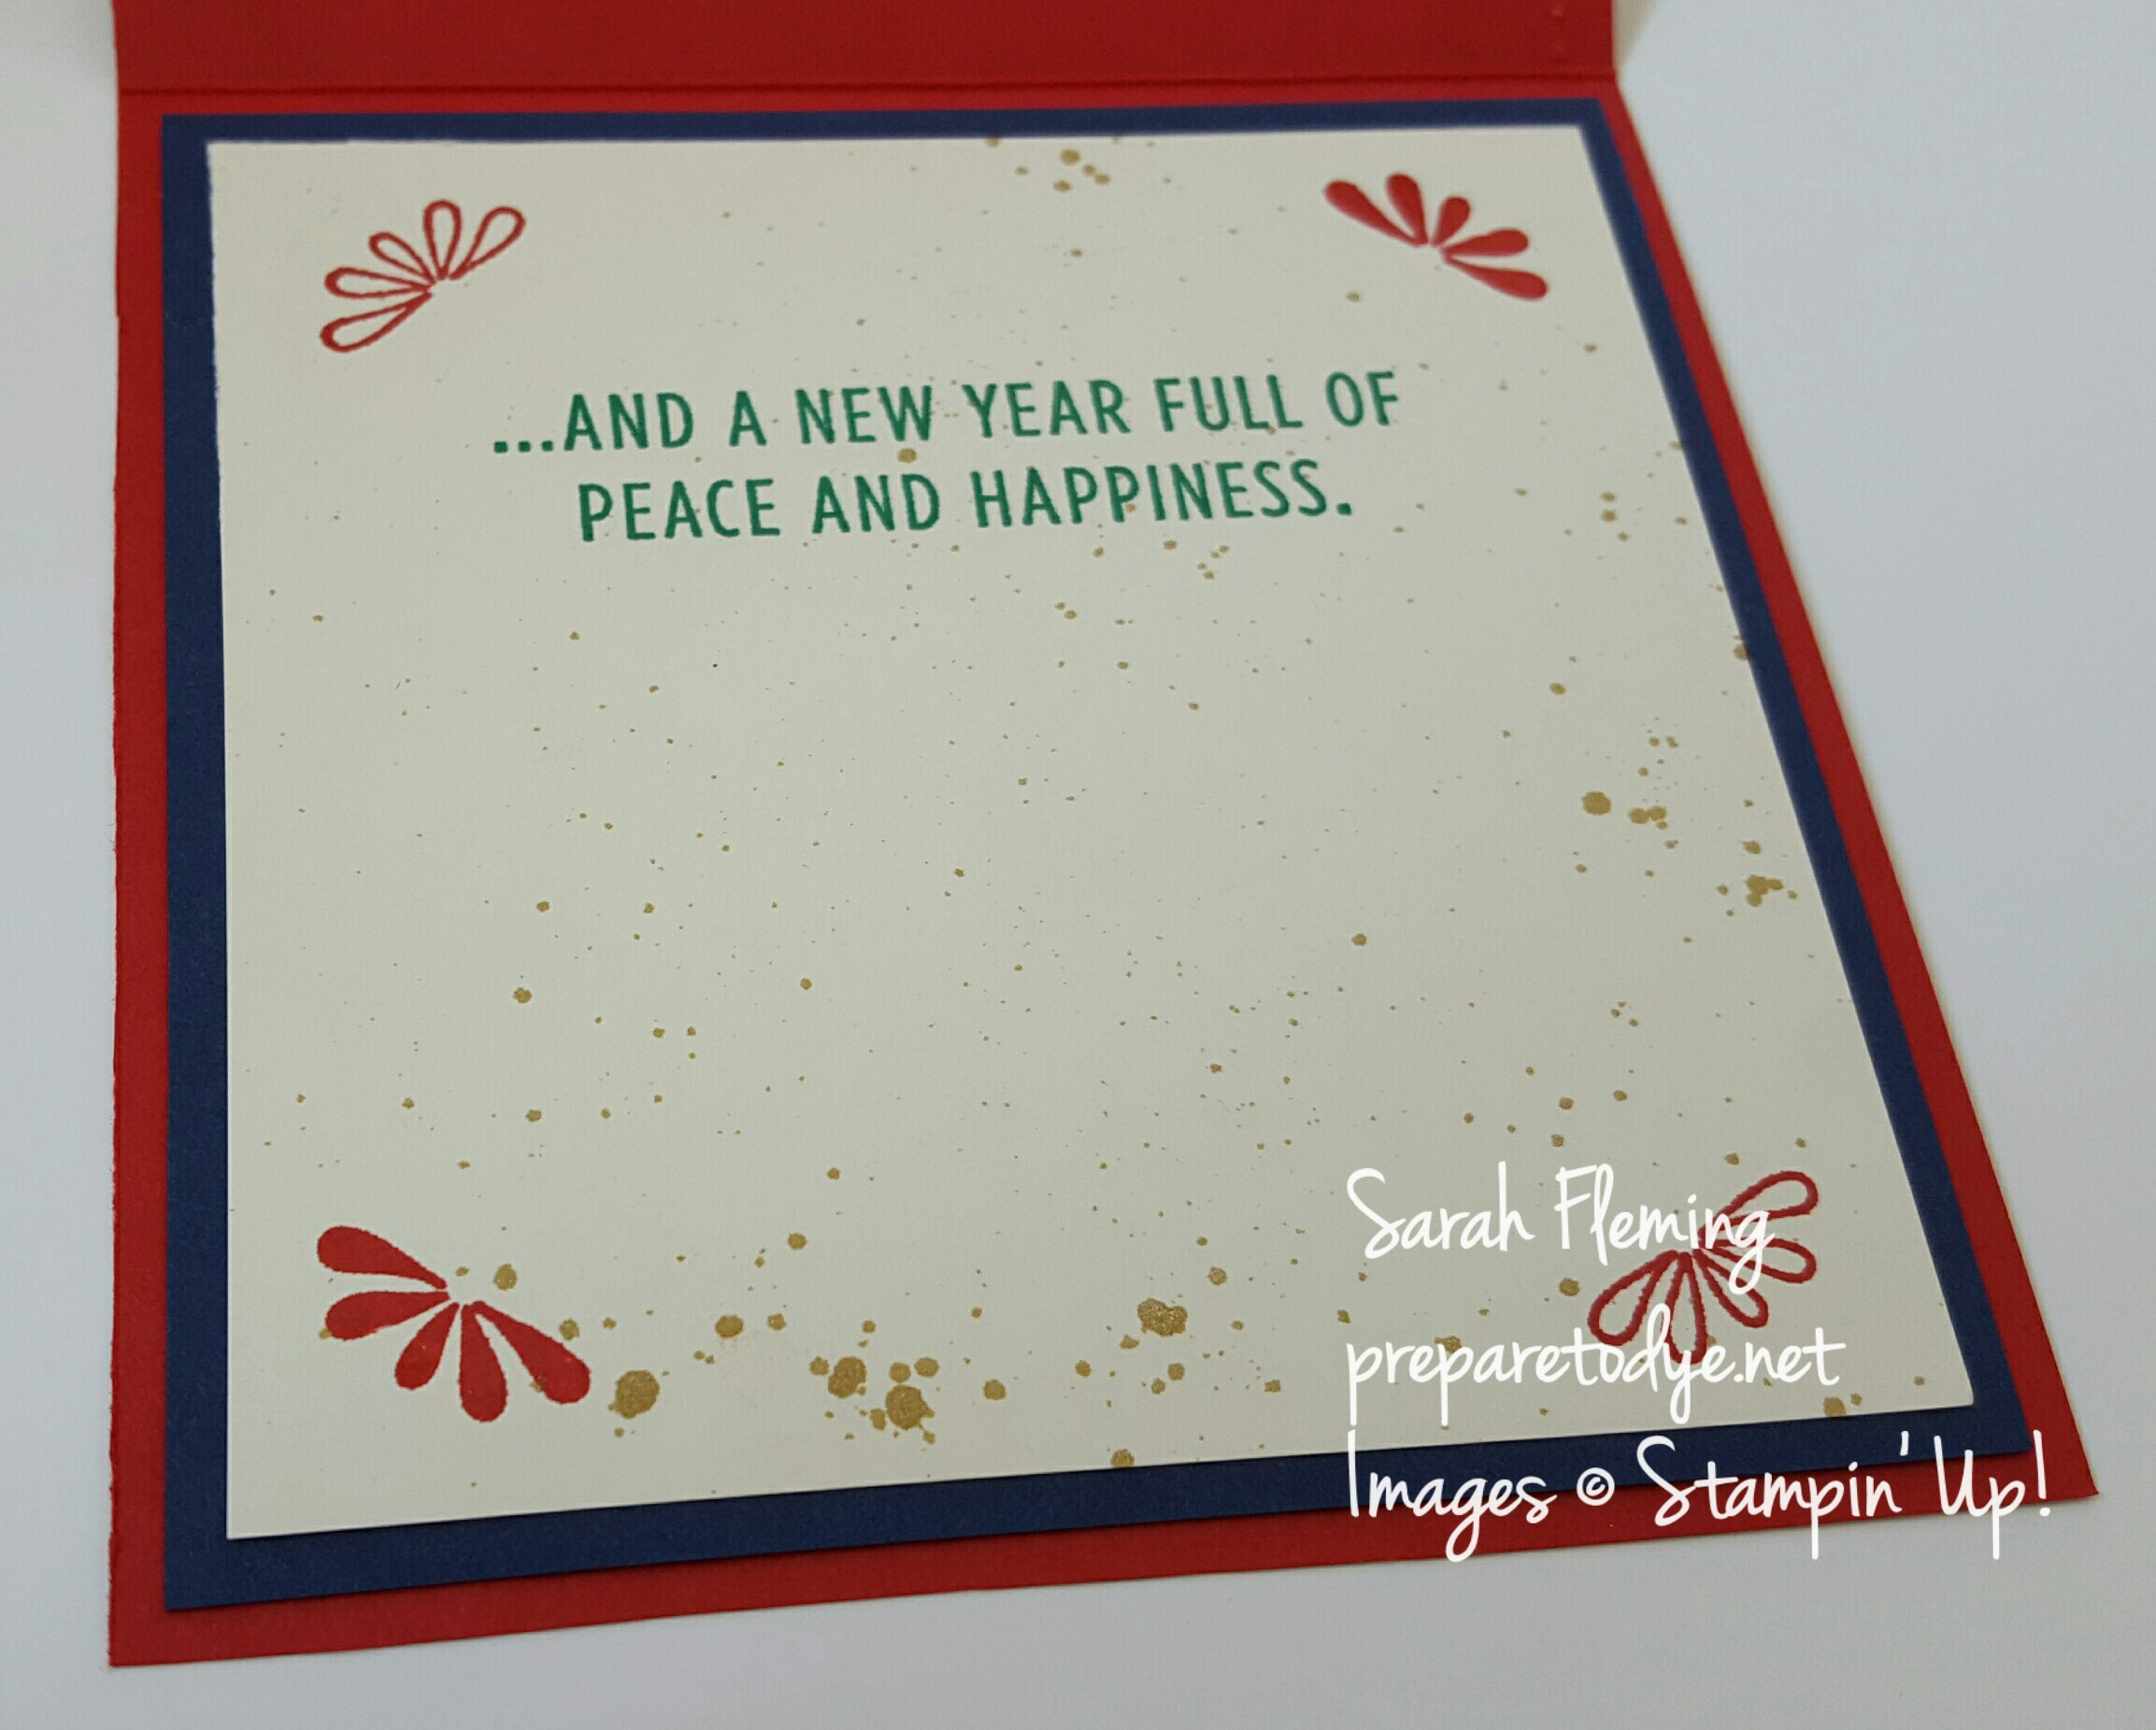 Stampin' Up! Wonderful Year - International Project Highlights October 2016 - Sarah Fleming - Prepare to Dye Papercrafts